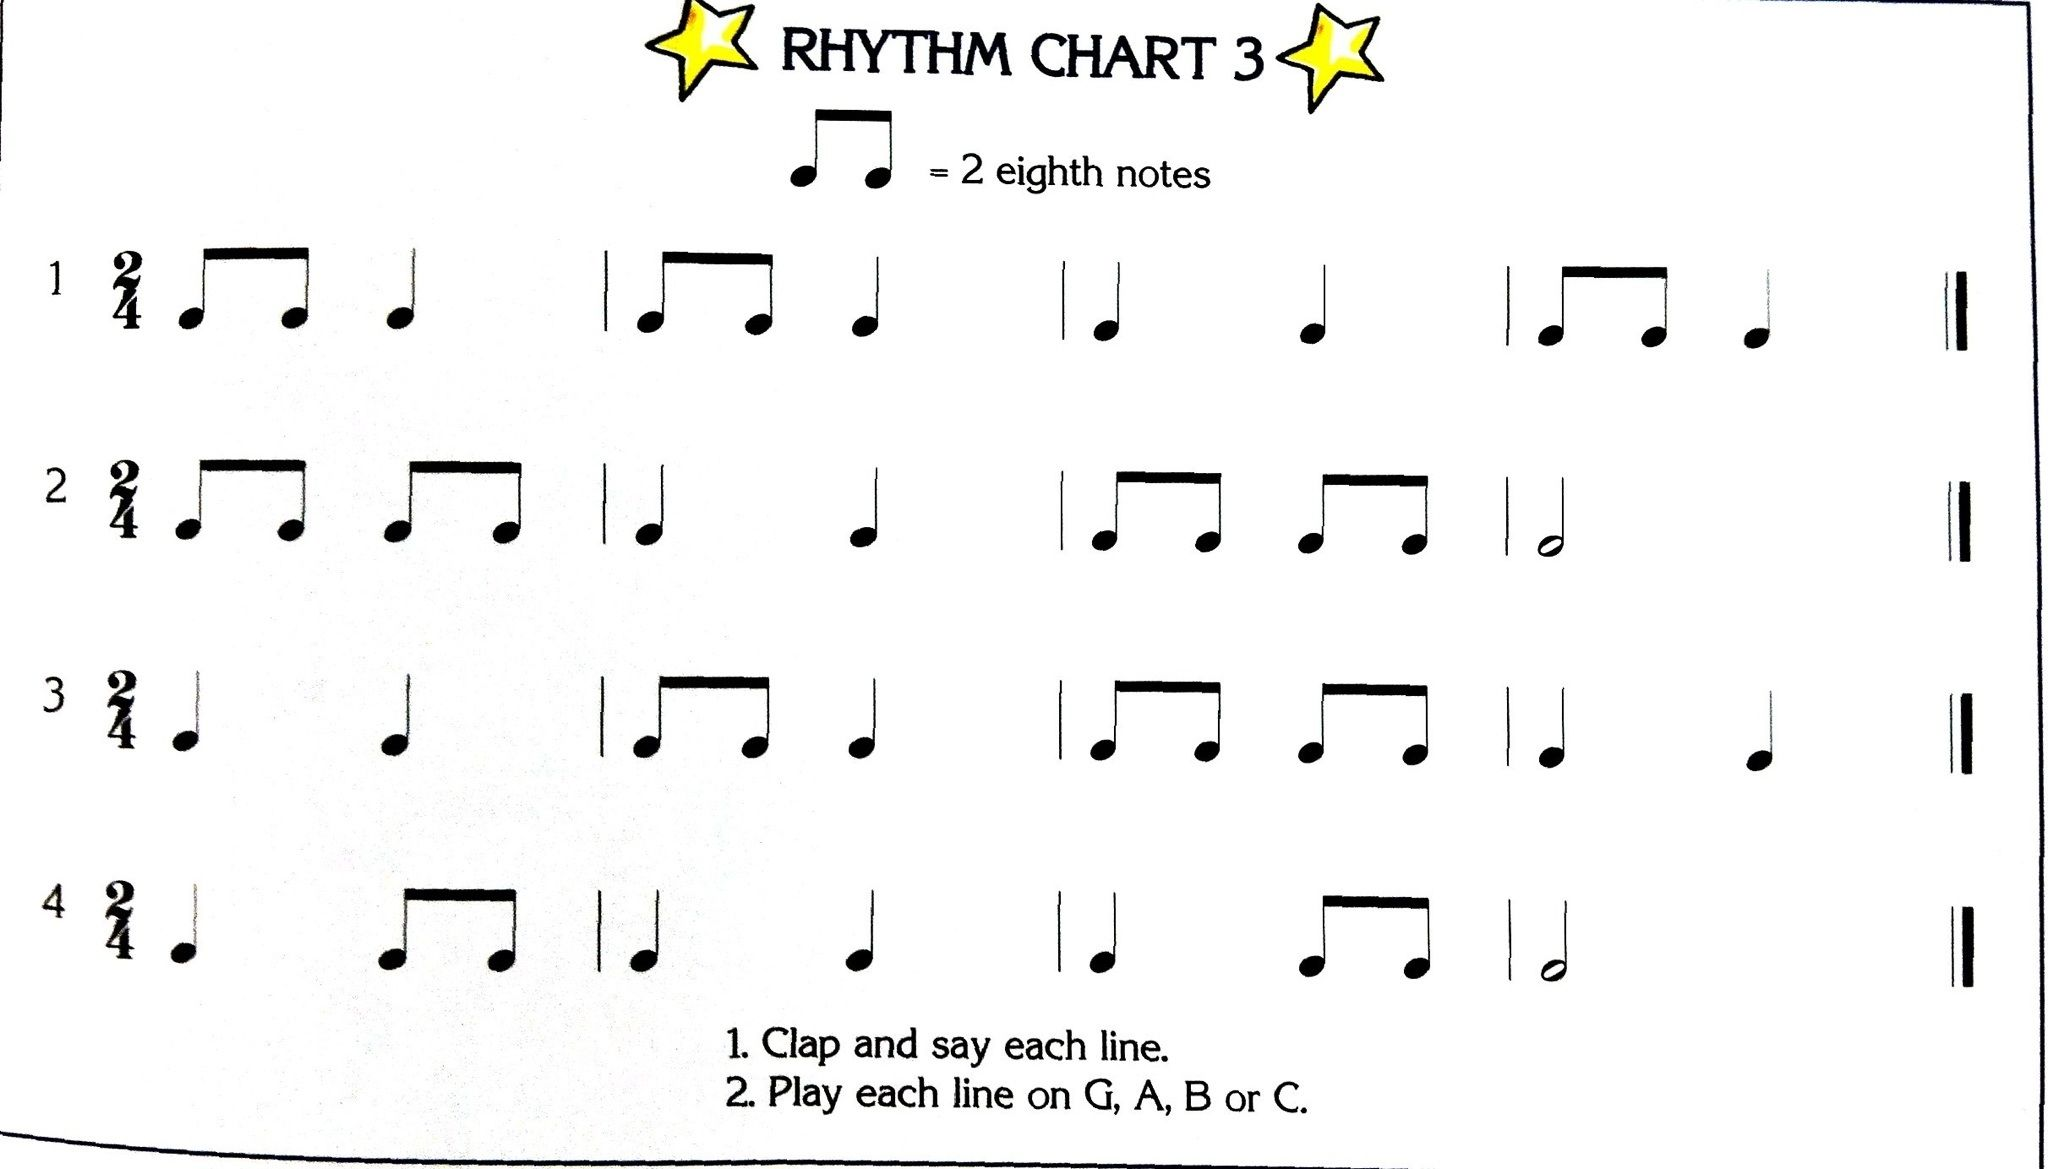 Simple Dumple Rhythms In 2 4 Time Signature